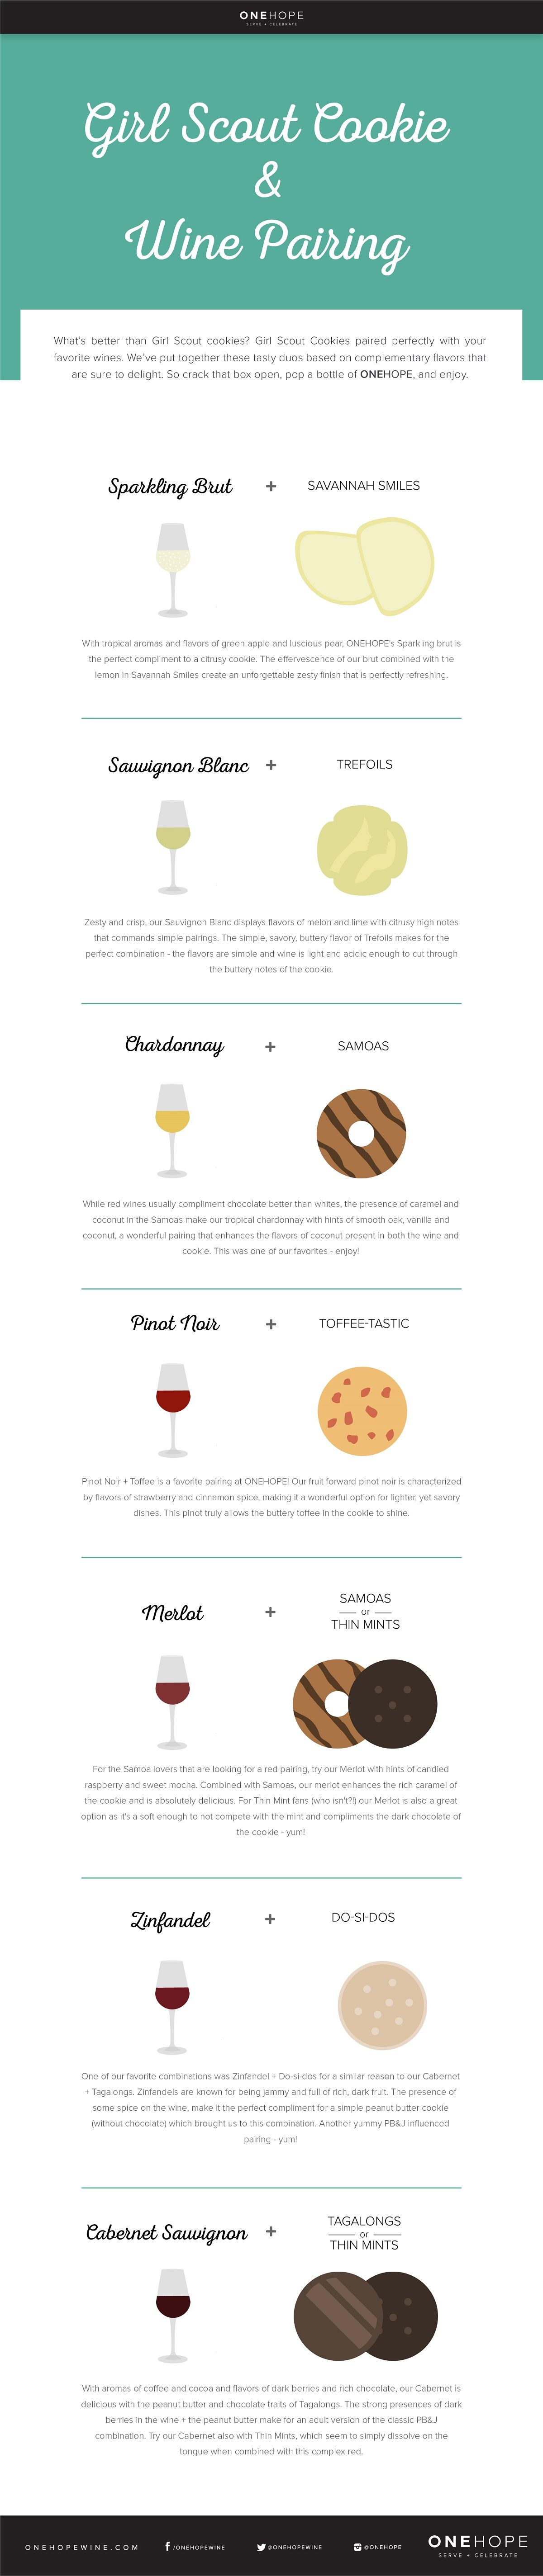 Girl Scout Cookies And Wine Pairing Guide #Infographic